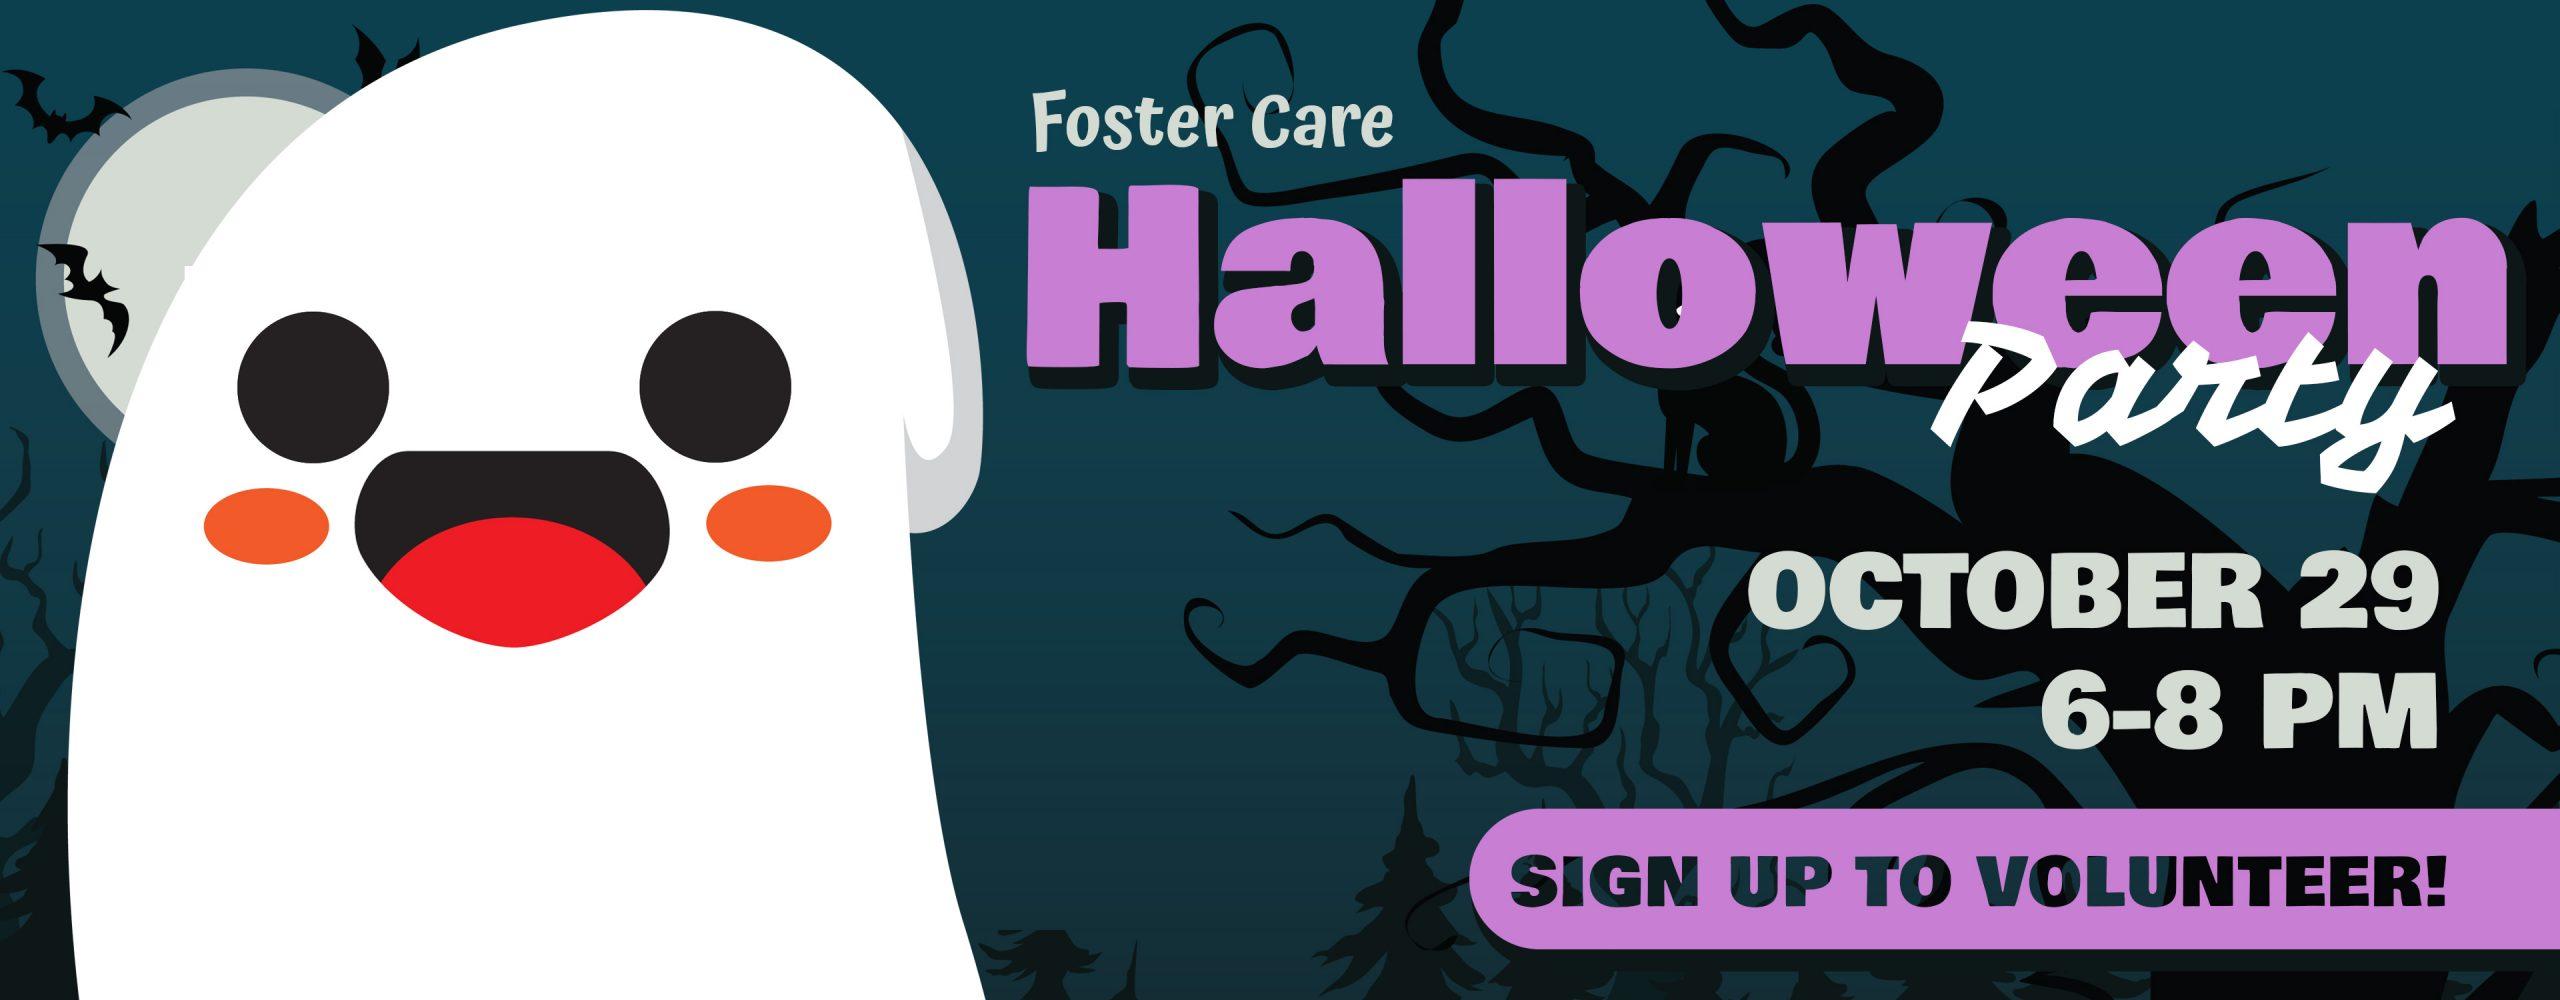 Foster Care Halloween Party